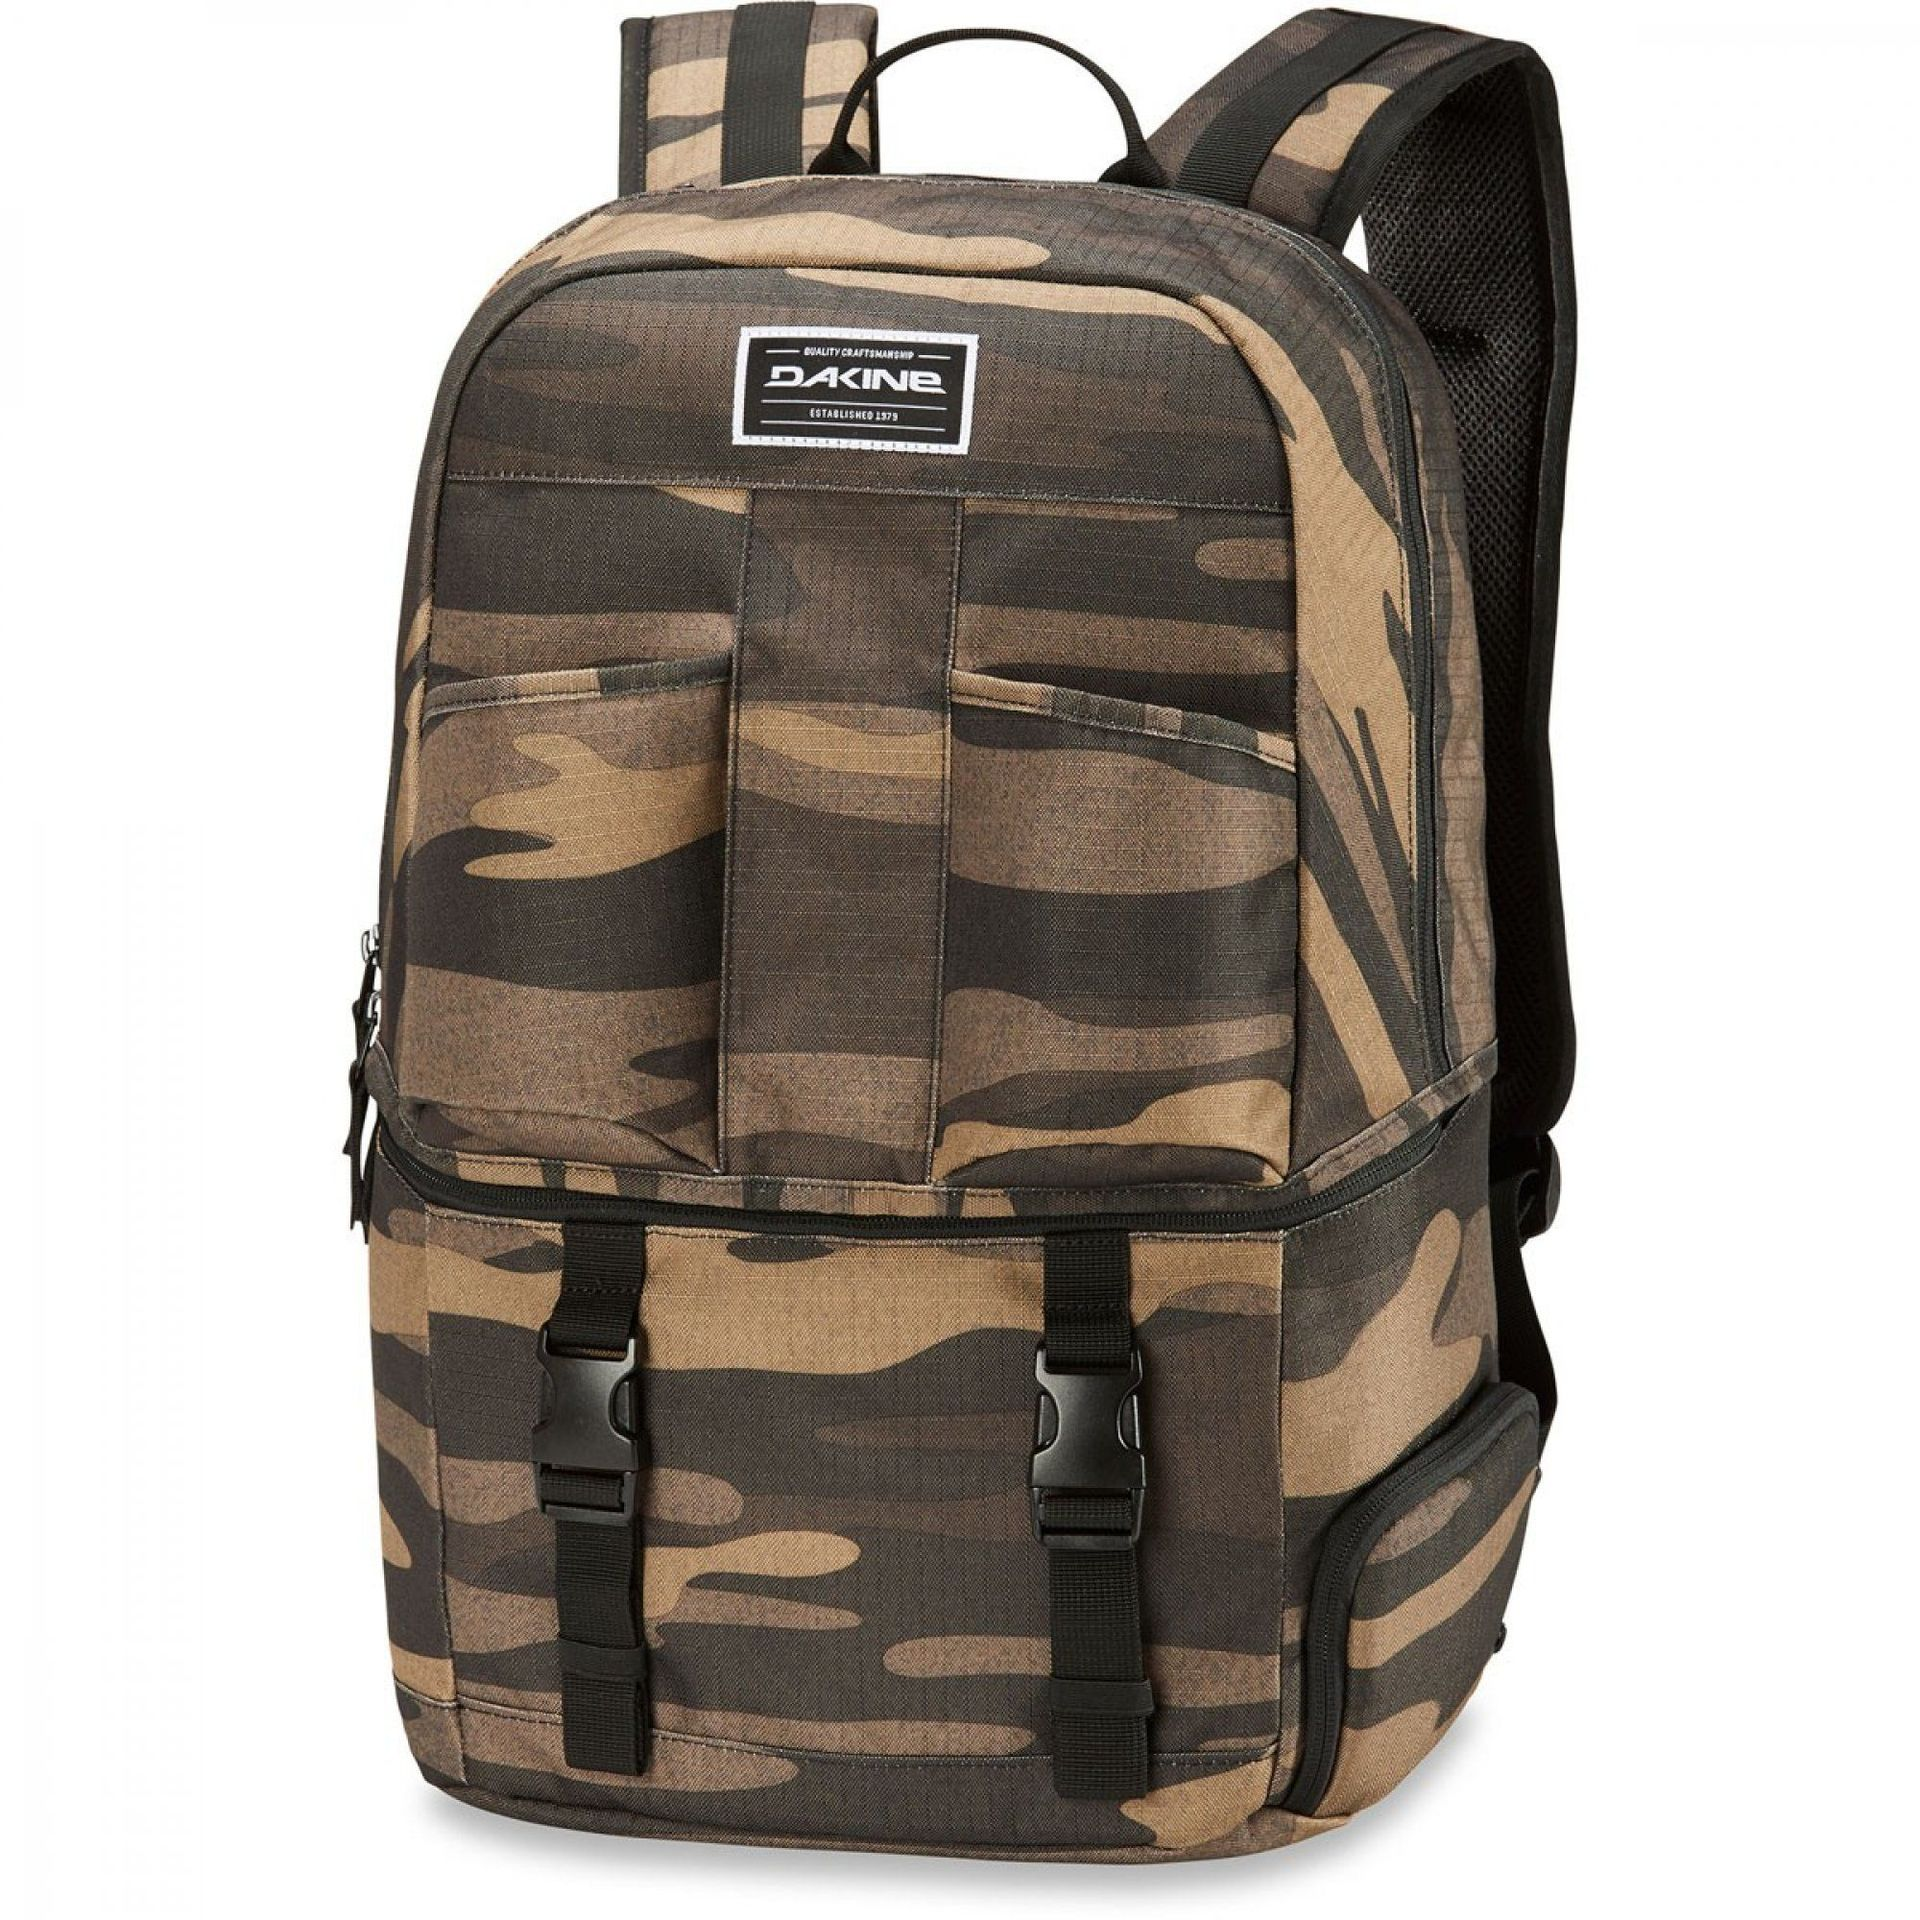 PLECAK DAKINE PARTY PACK 28L FIELD CAMO